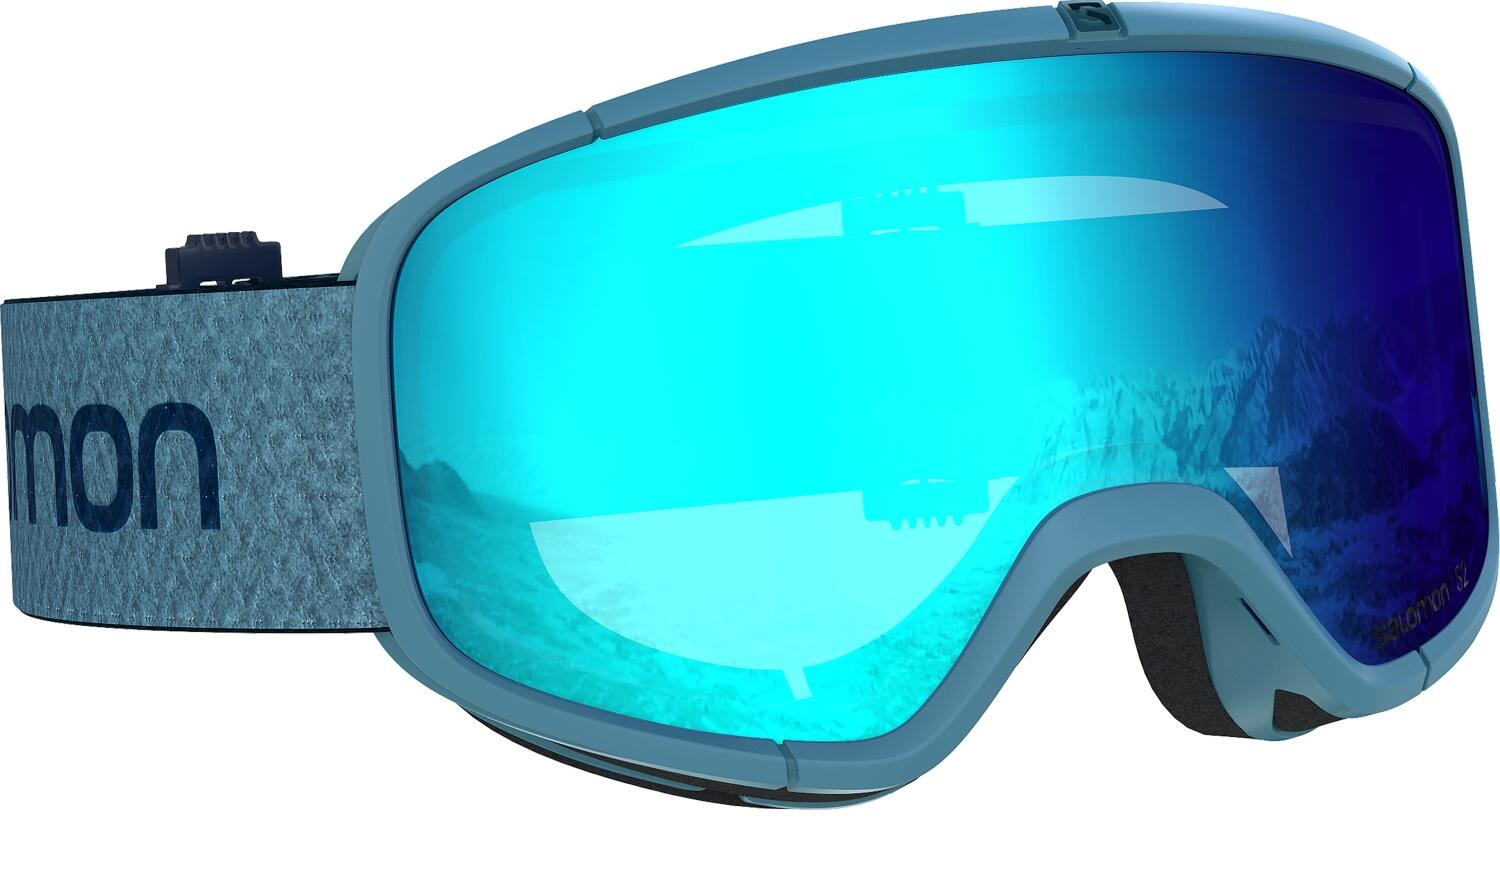 salomon-fourseven-skibrille-farbe-forget-me-not-scheibe-universal-mid-blue-